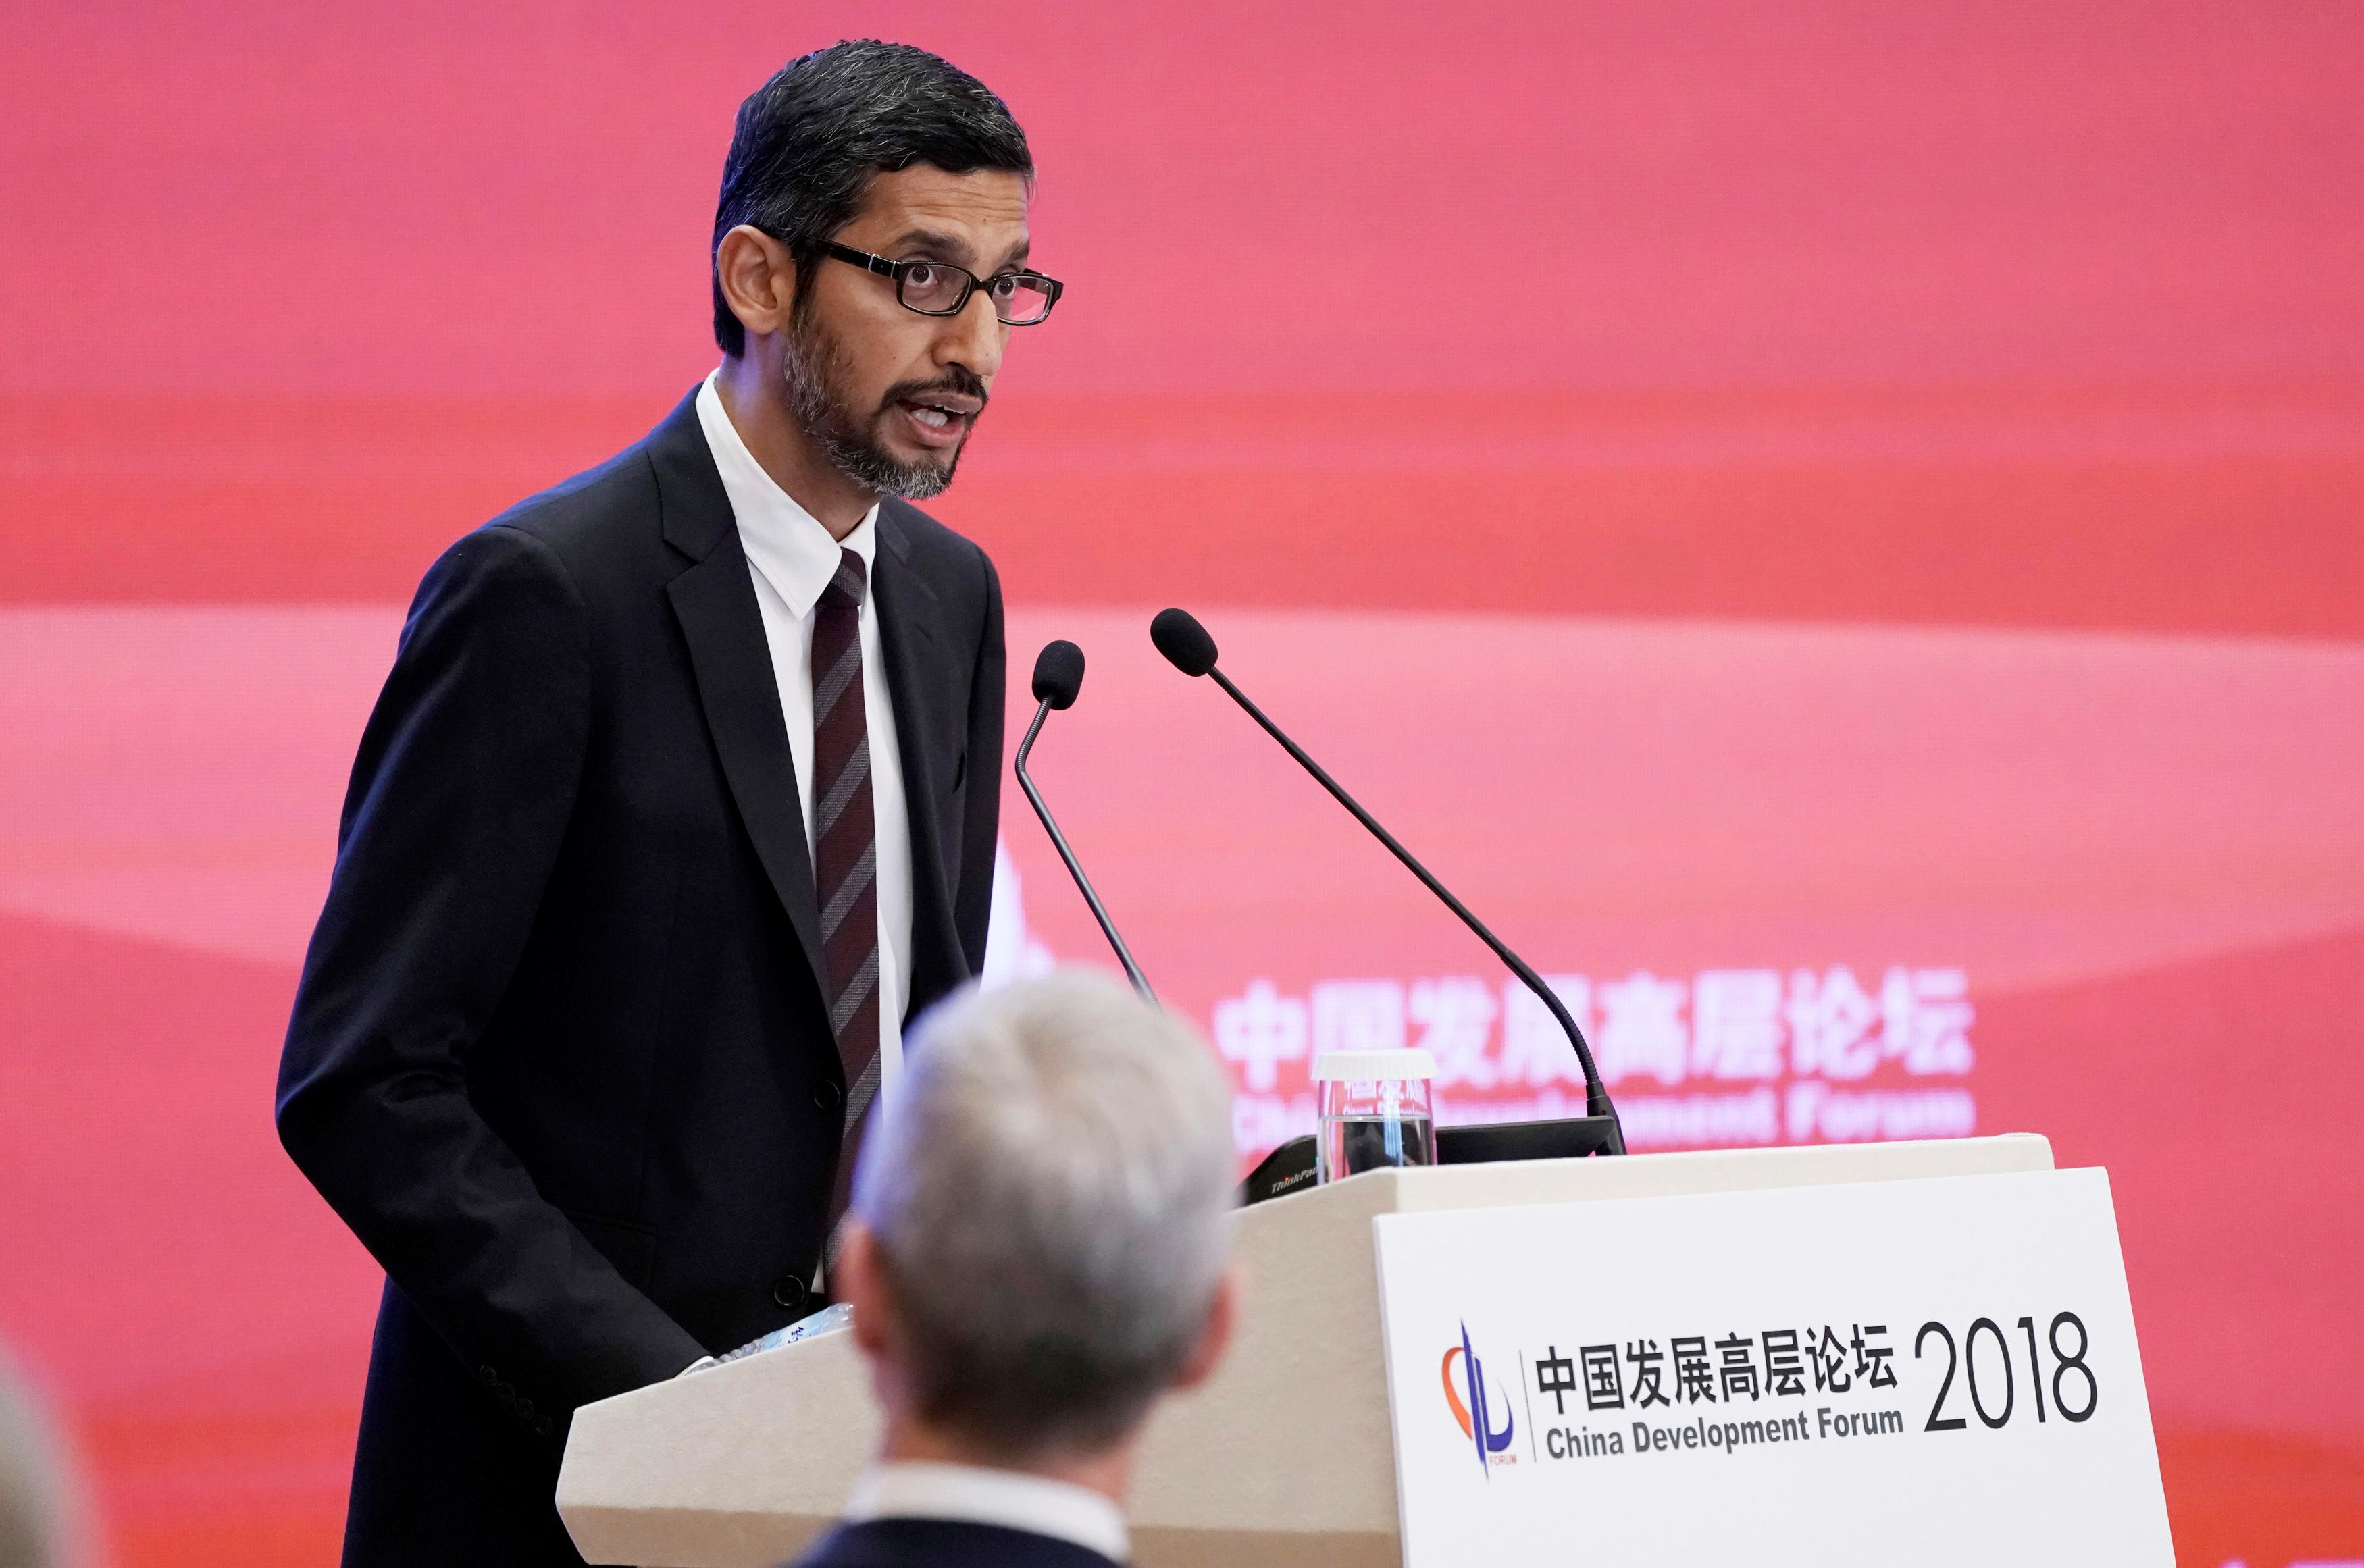 Sundar Pichai China